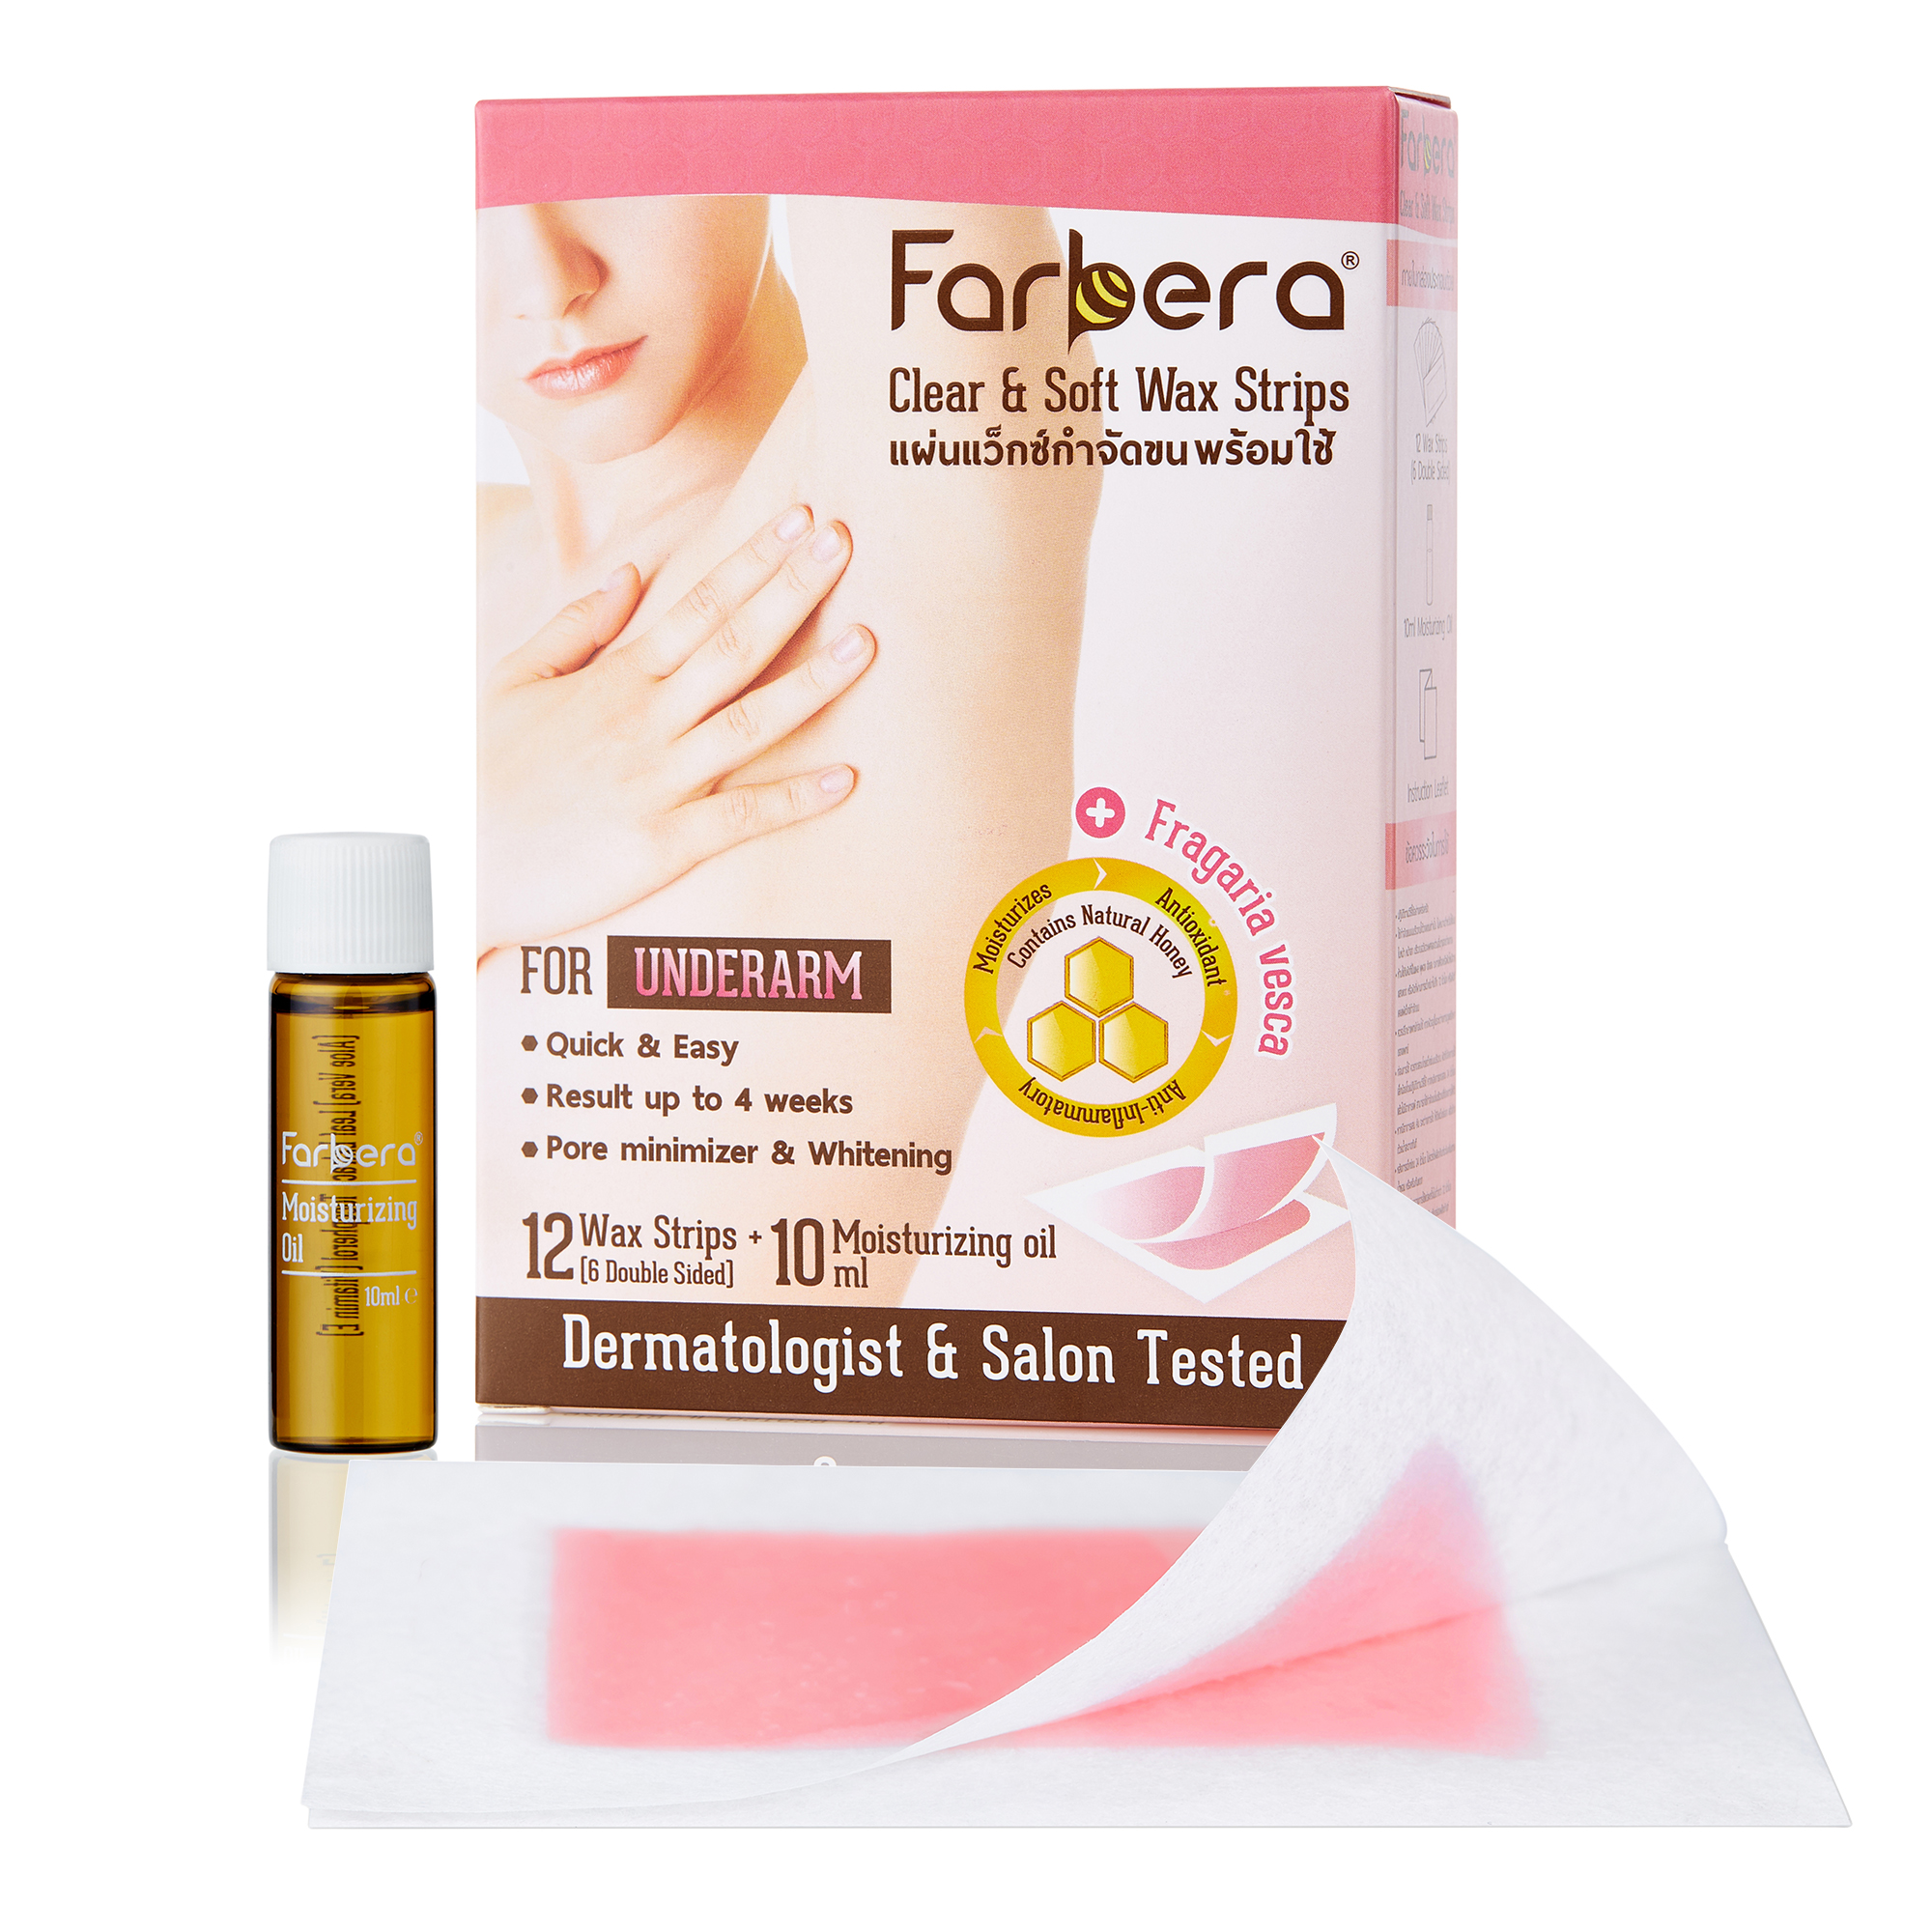 Farbera Clear & Soft Wax Strips (For underarm) 12 แผ่น